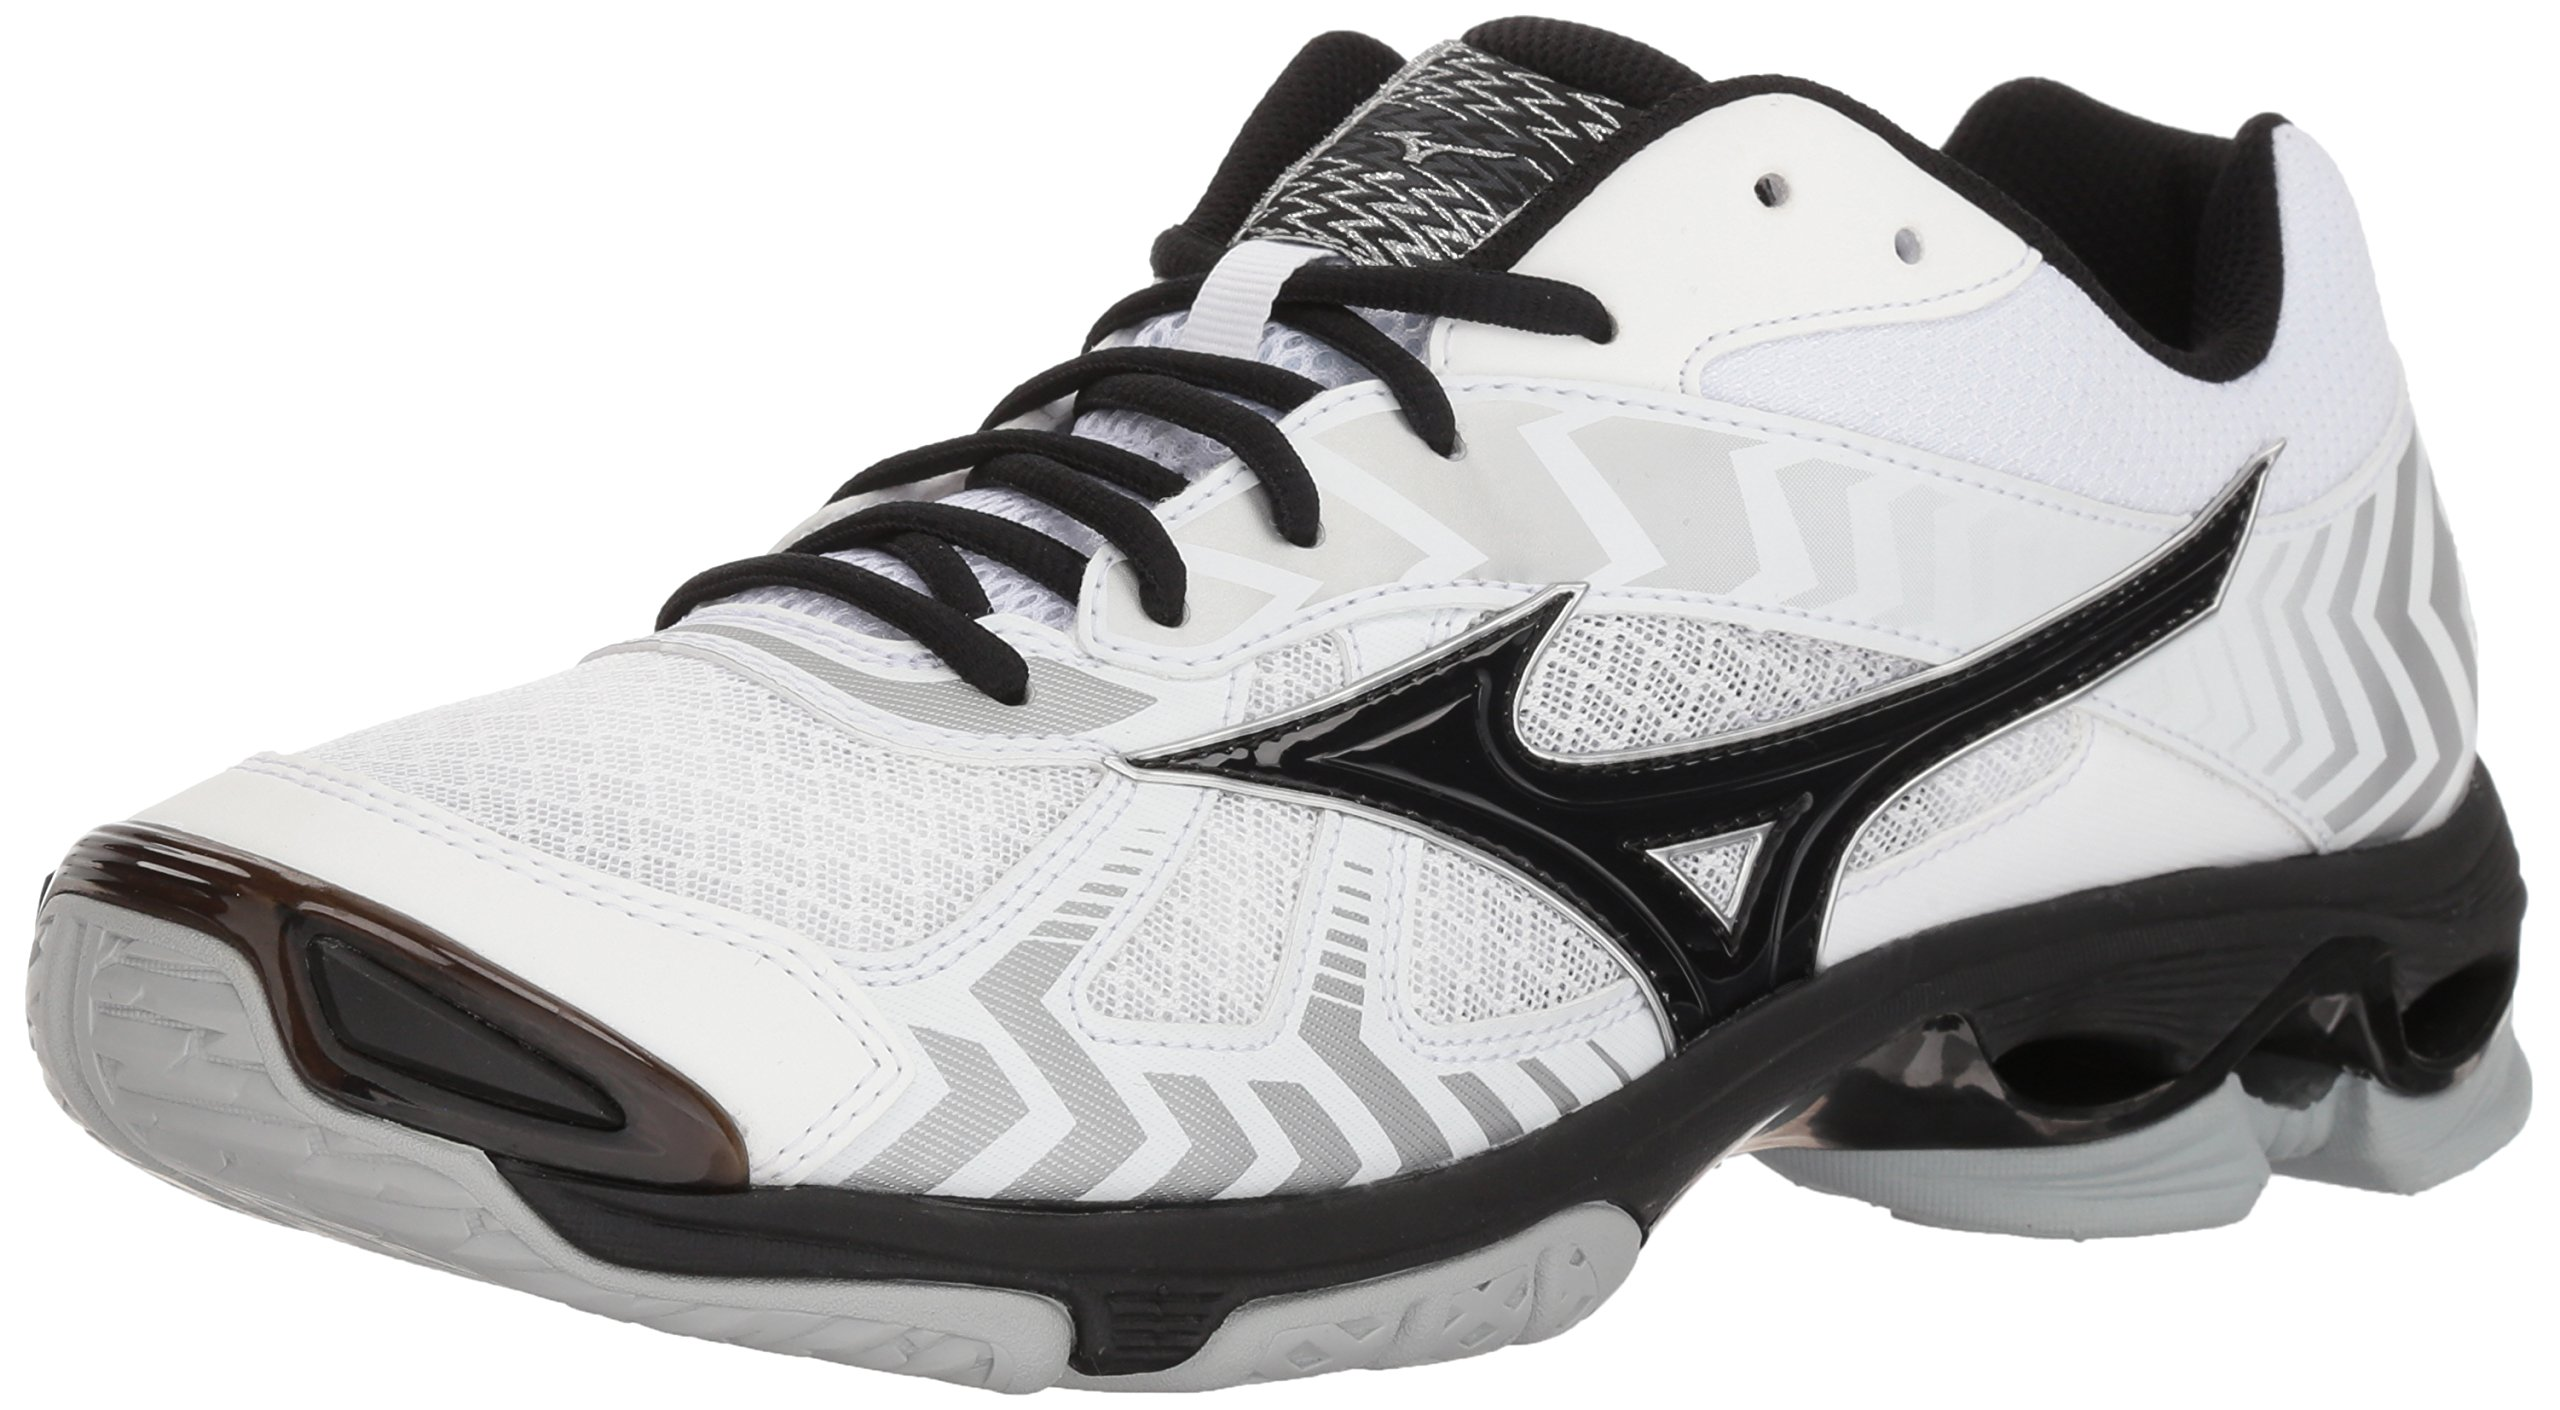 Mizuno Men's Wave Bolt 7 Volleyball Shoe, White/Black, Men's 16 D US